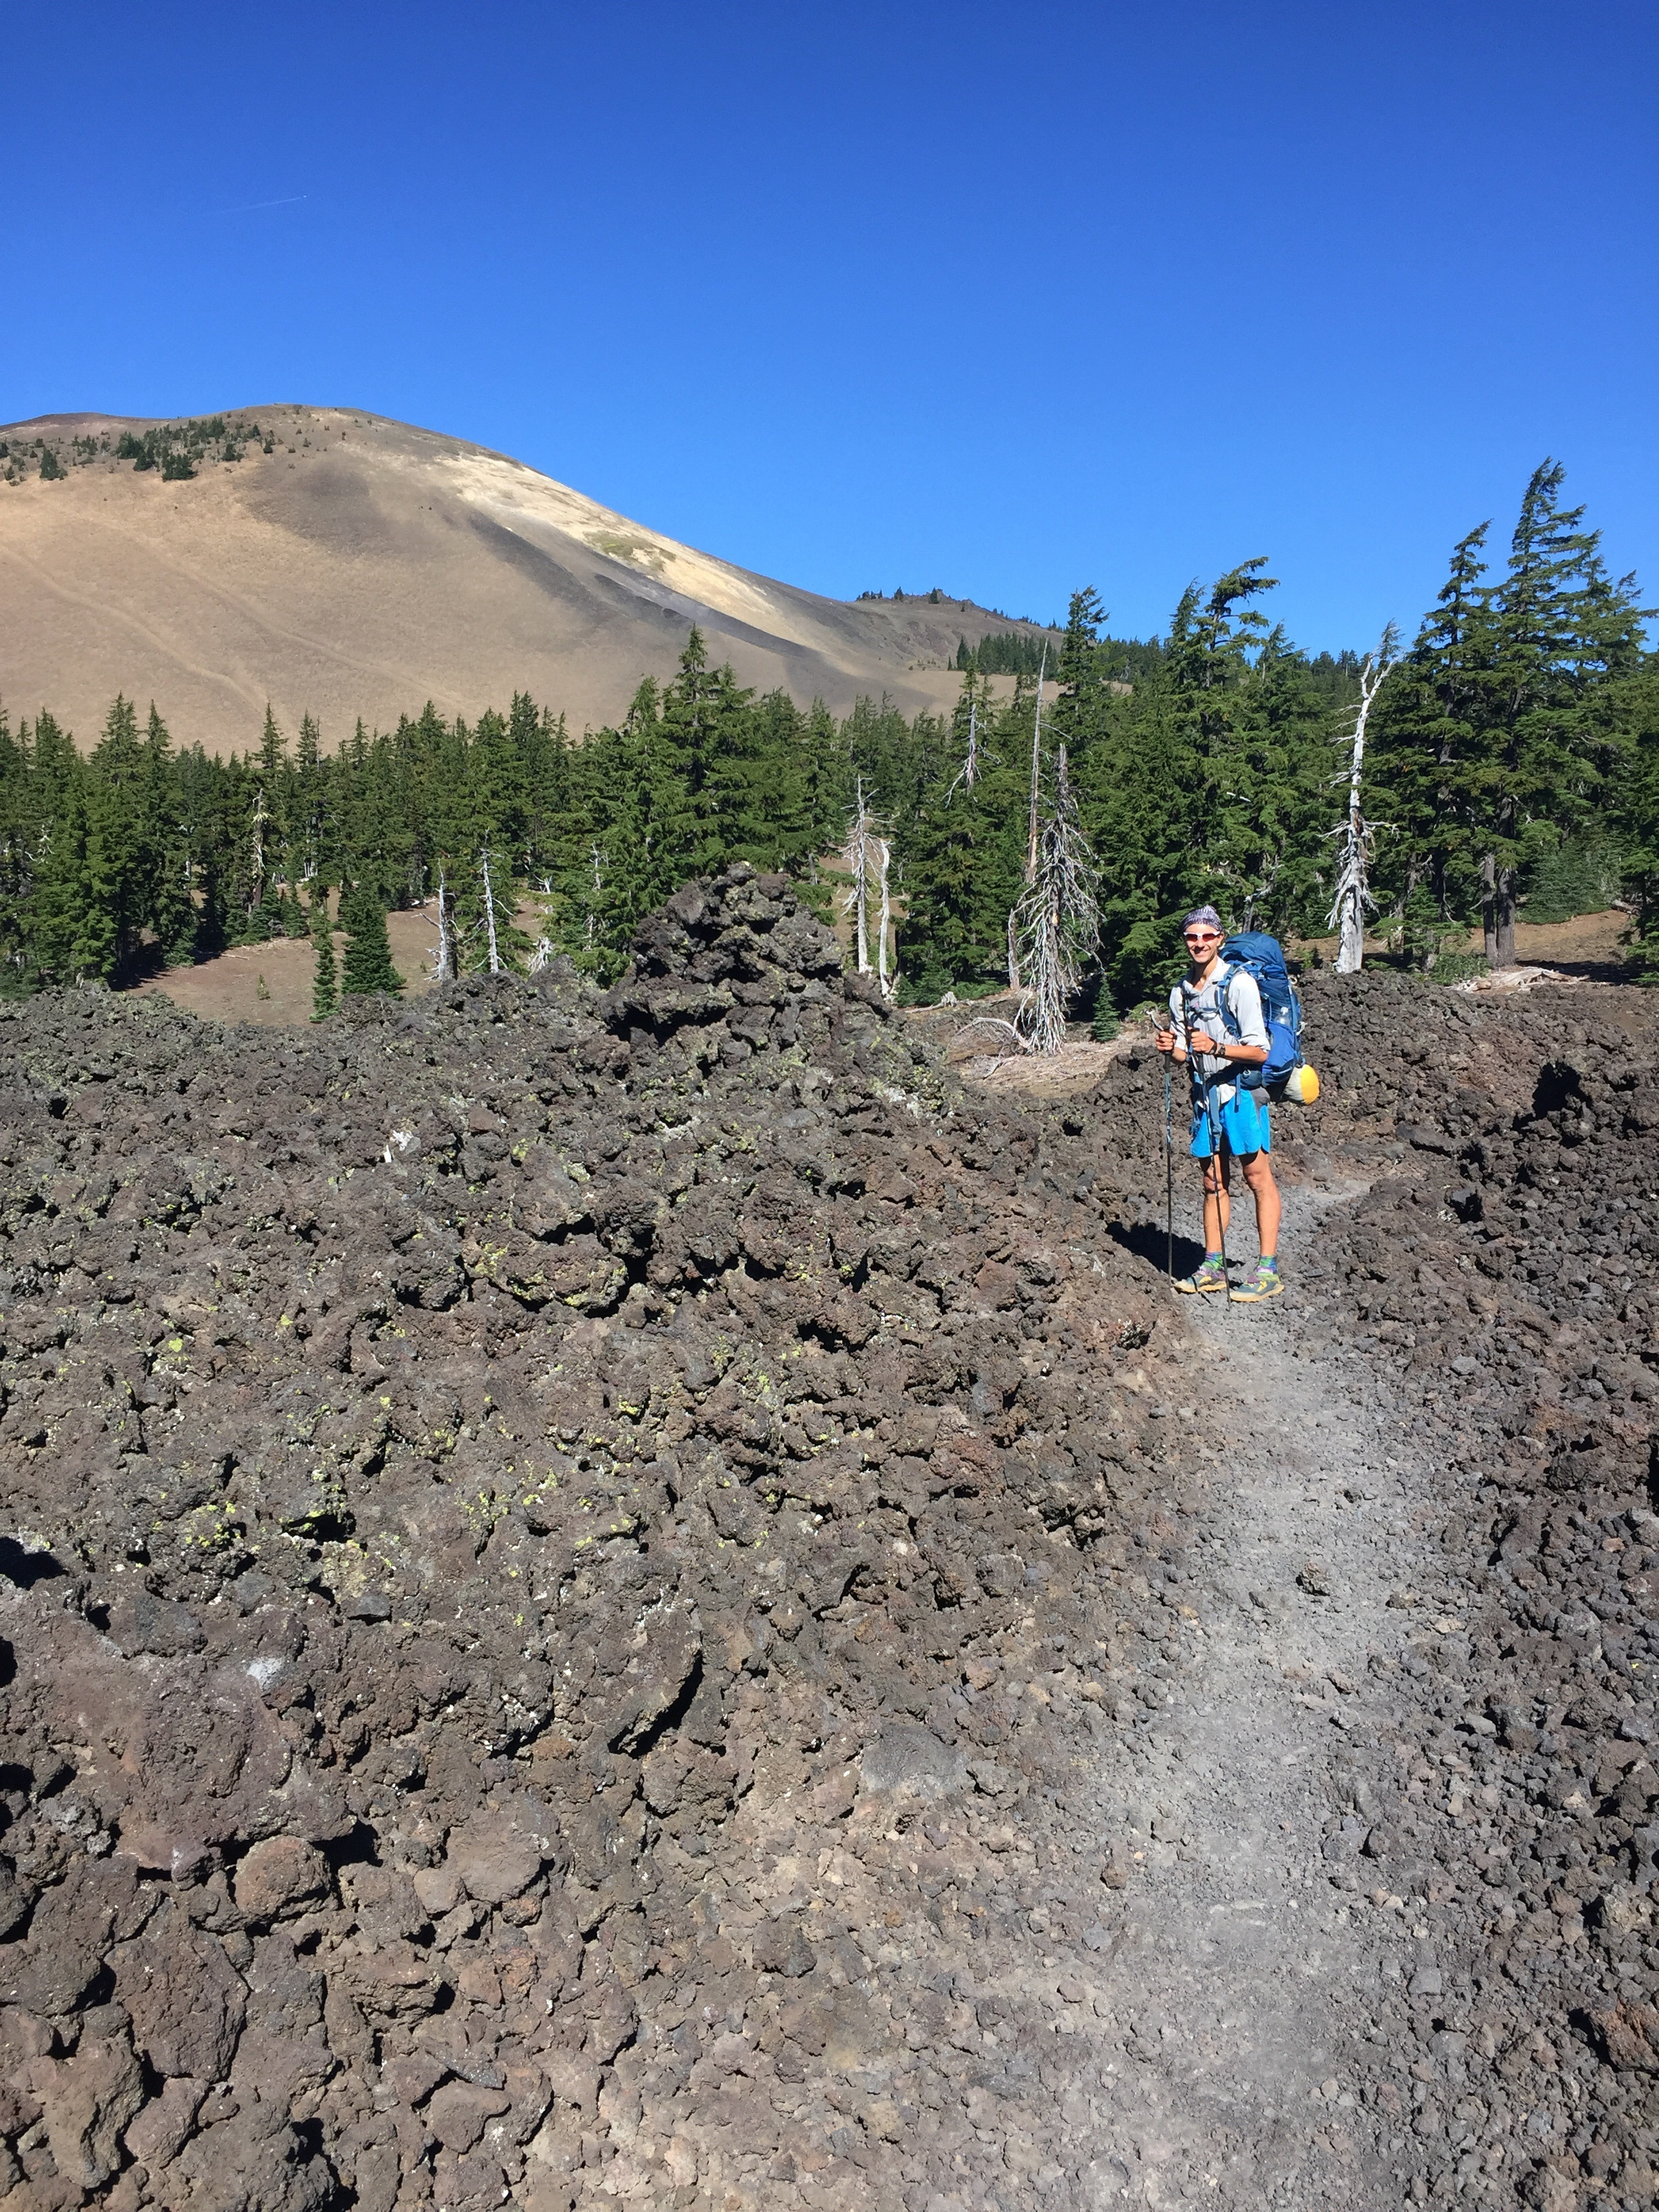 Belknap Crater is where all of this lava came from ~3000 years ago